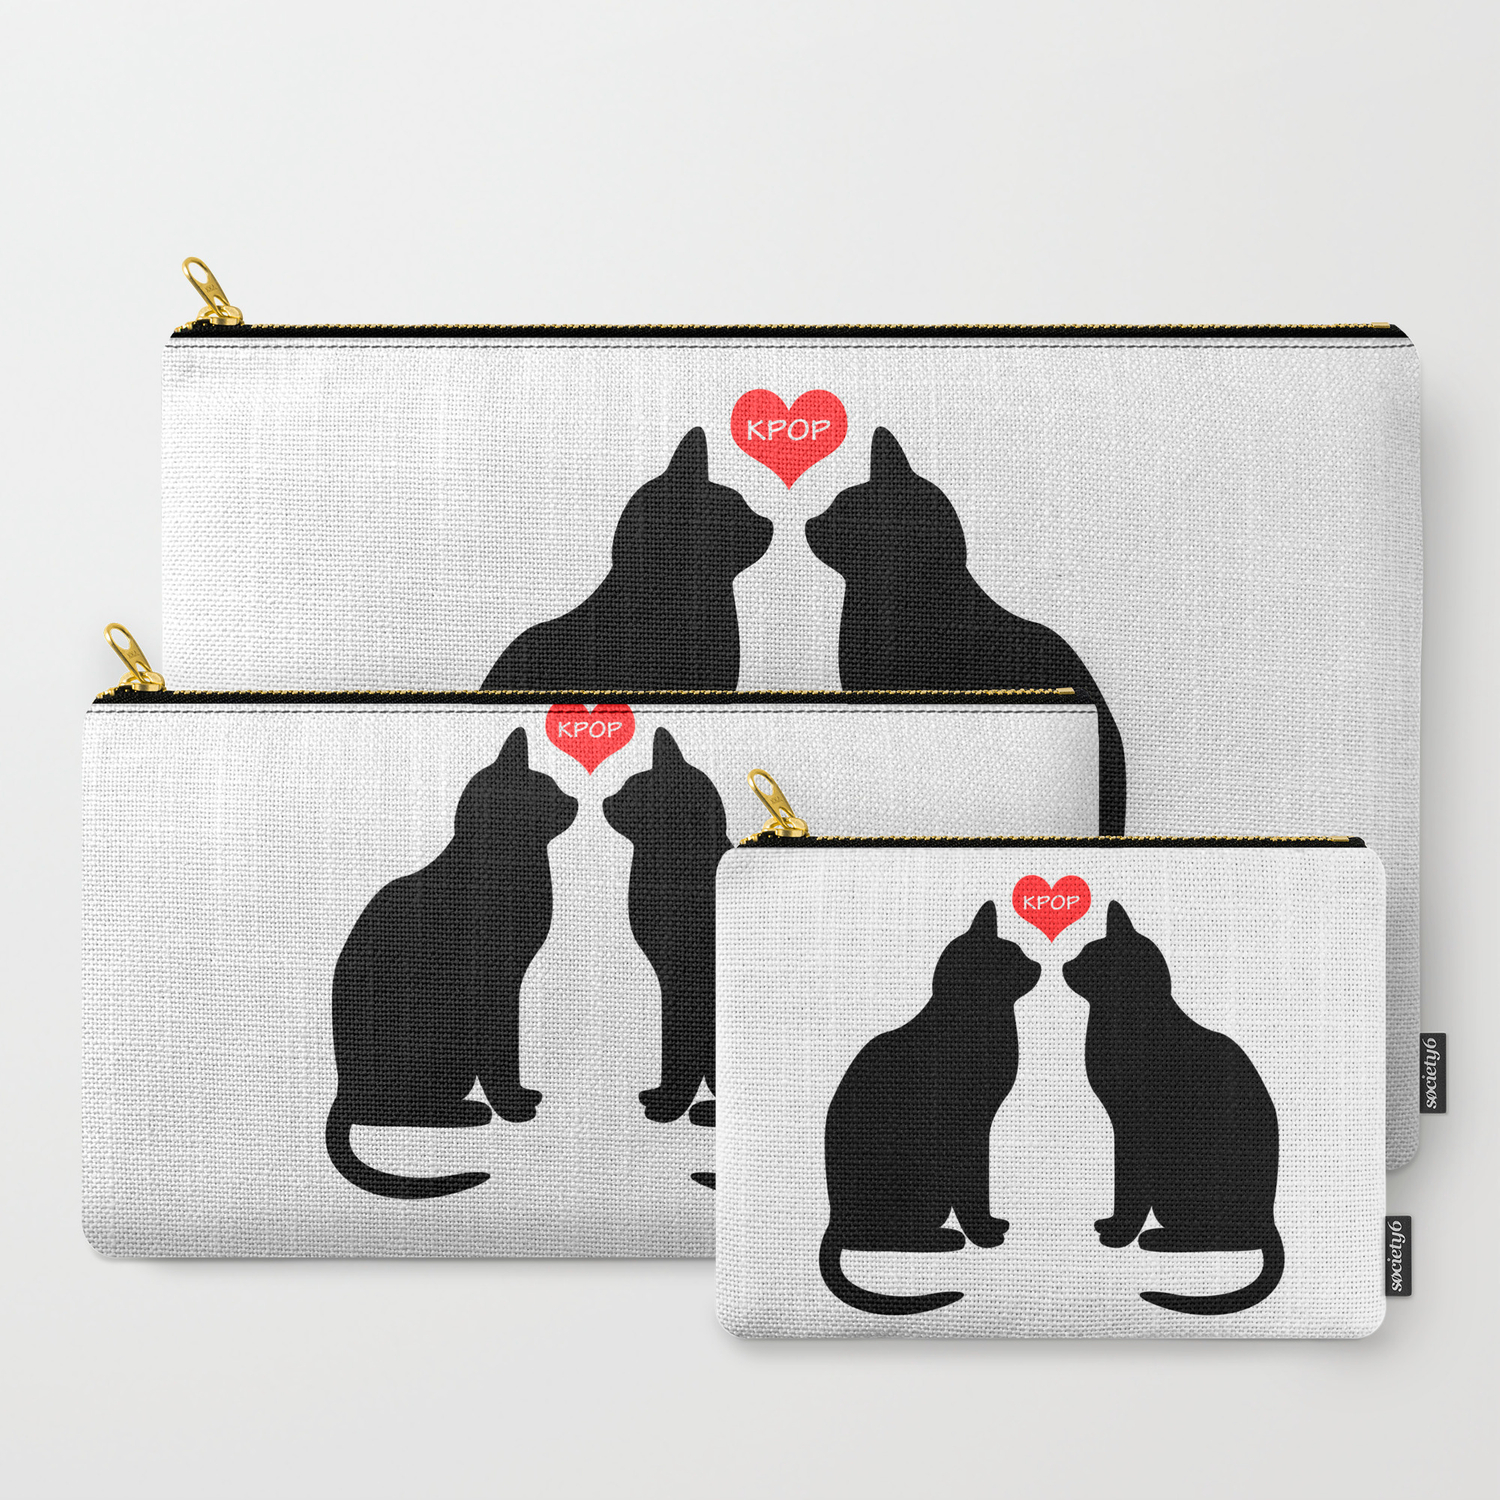 KPOP Cats Love Carry-All Pouch